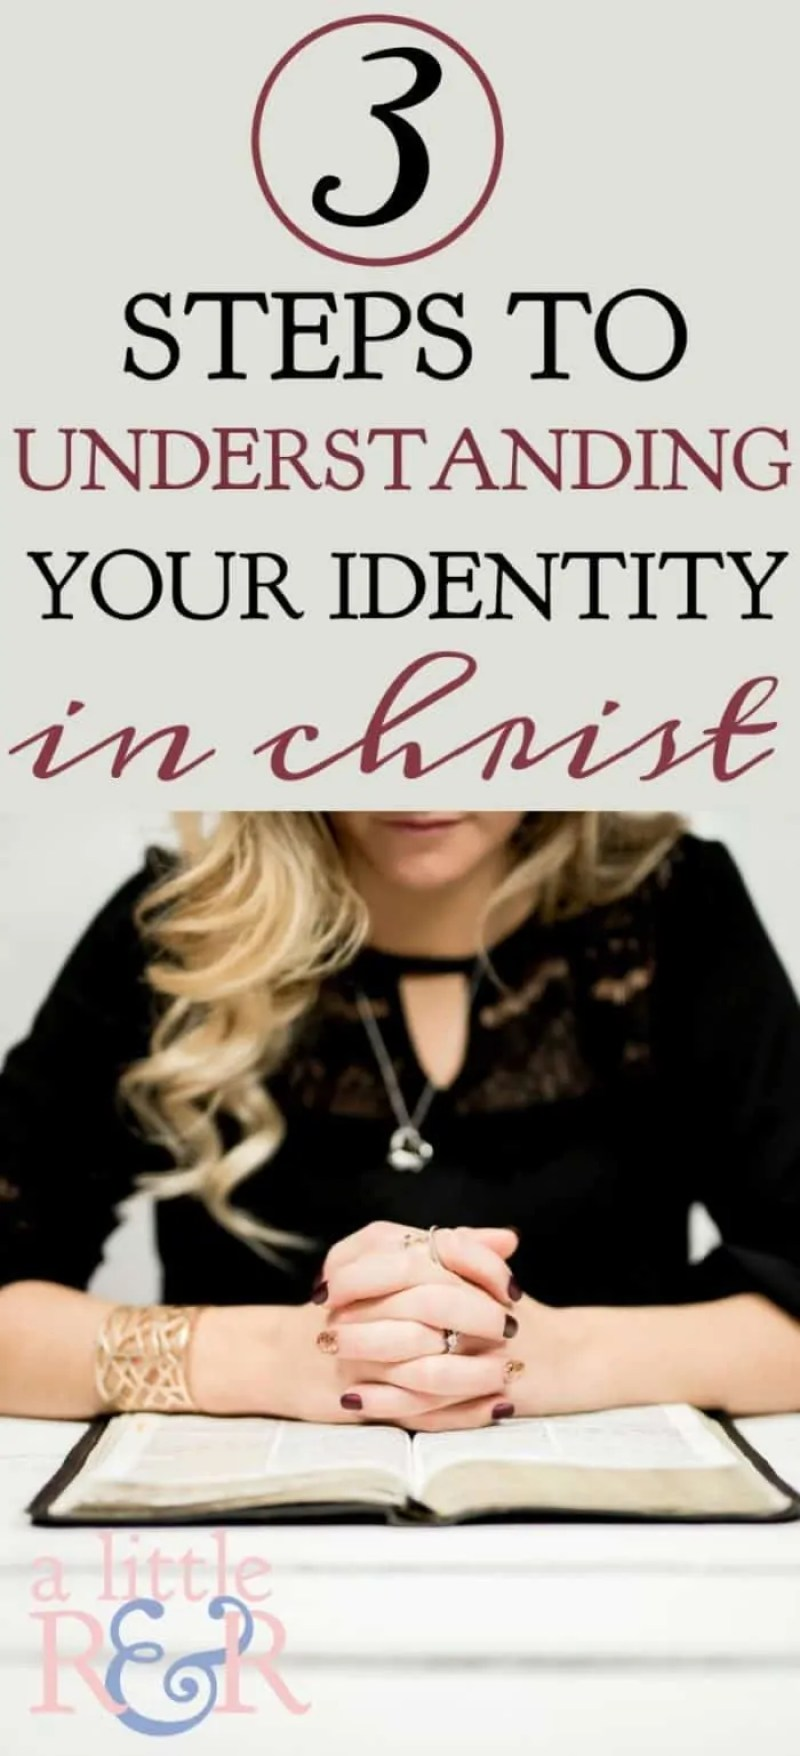 Understanding your identity in Christ is critical to your ability to live in true freedom from your past and the guilt and condemnation that so frequently plagues us. In Romans 6-8 we discover three steps to walking in our new identity in Christ.